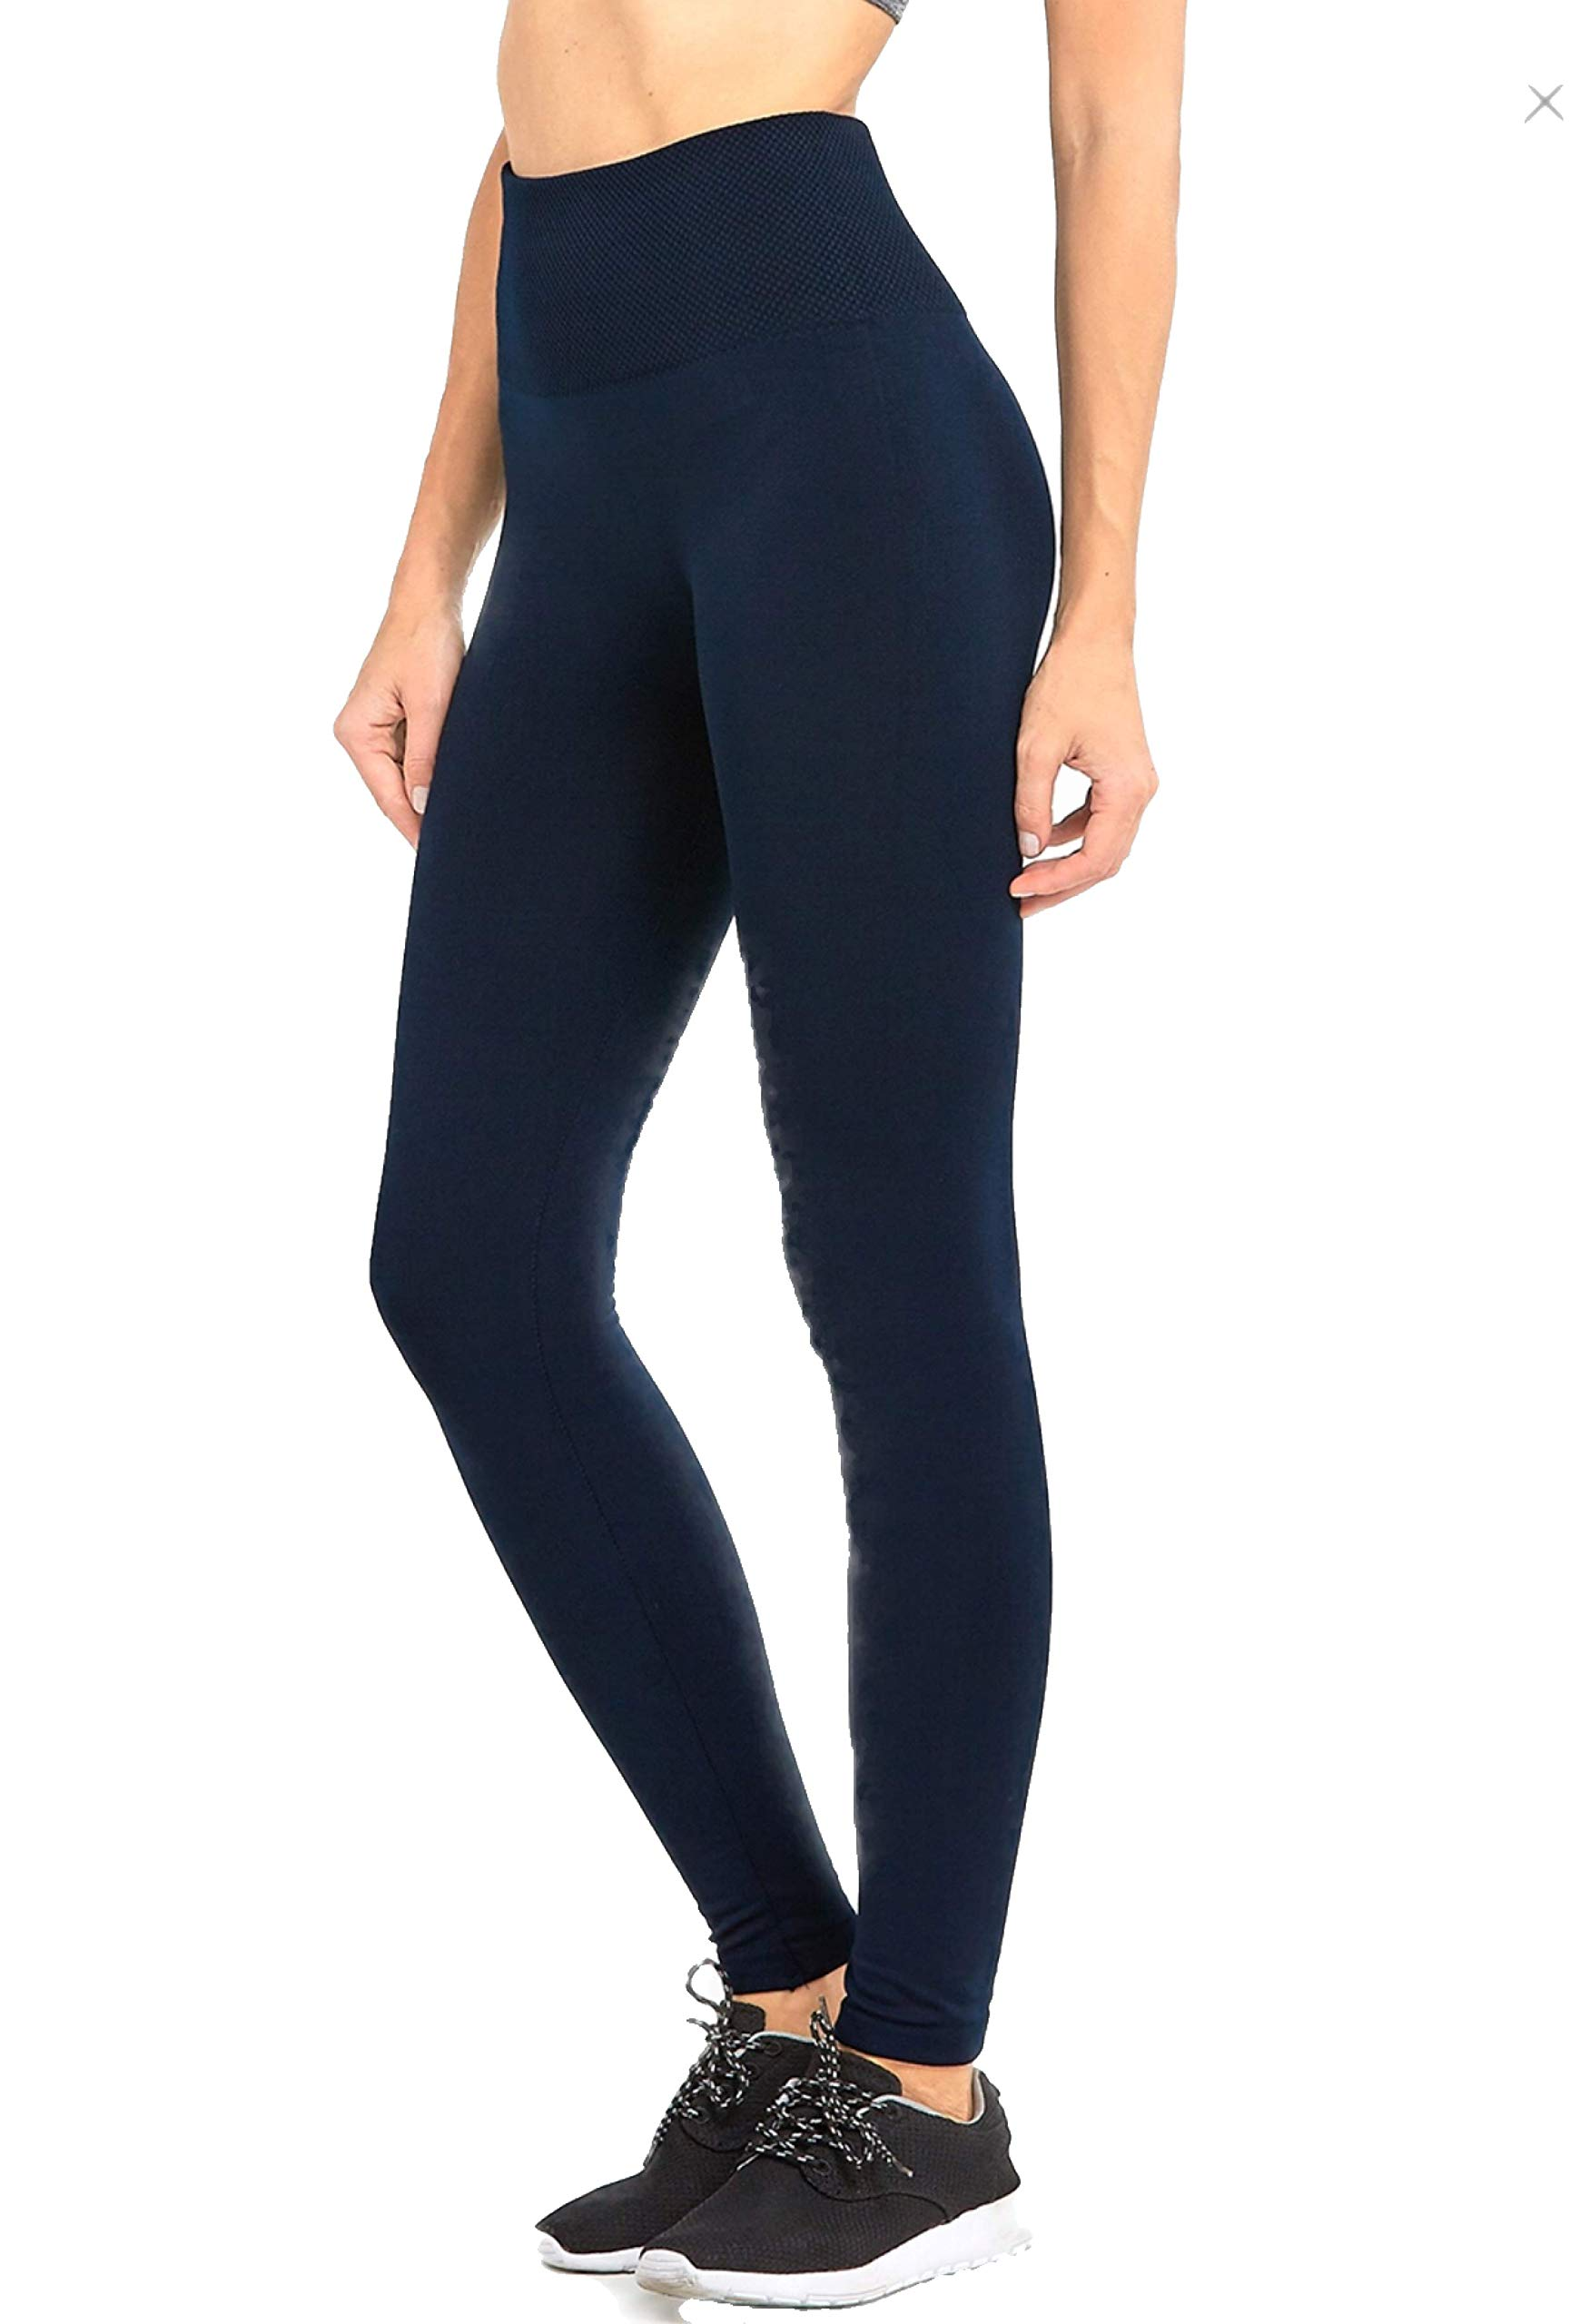 Sofra High Waist Winter Leggings